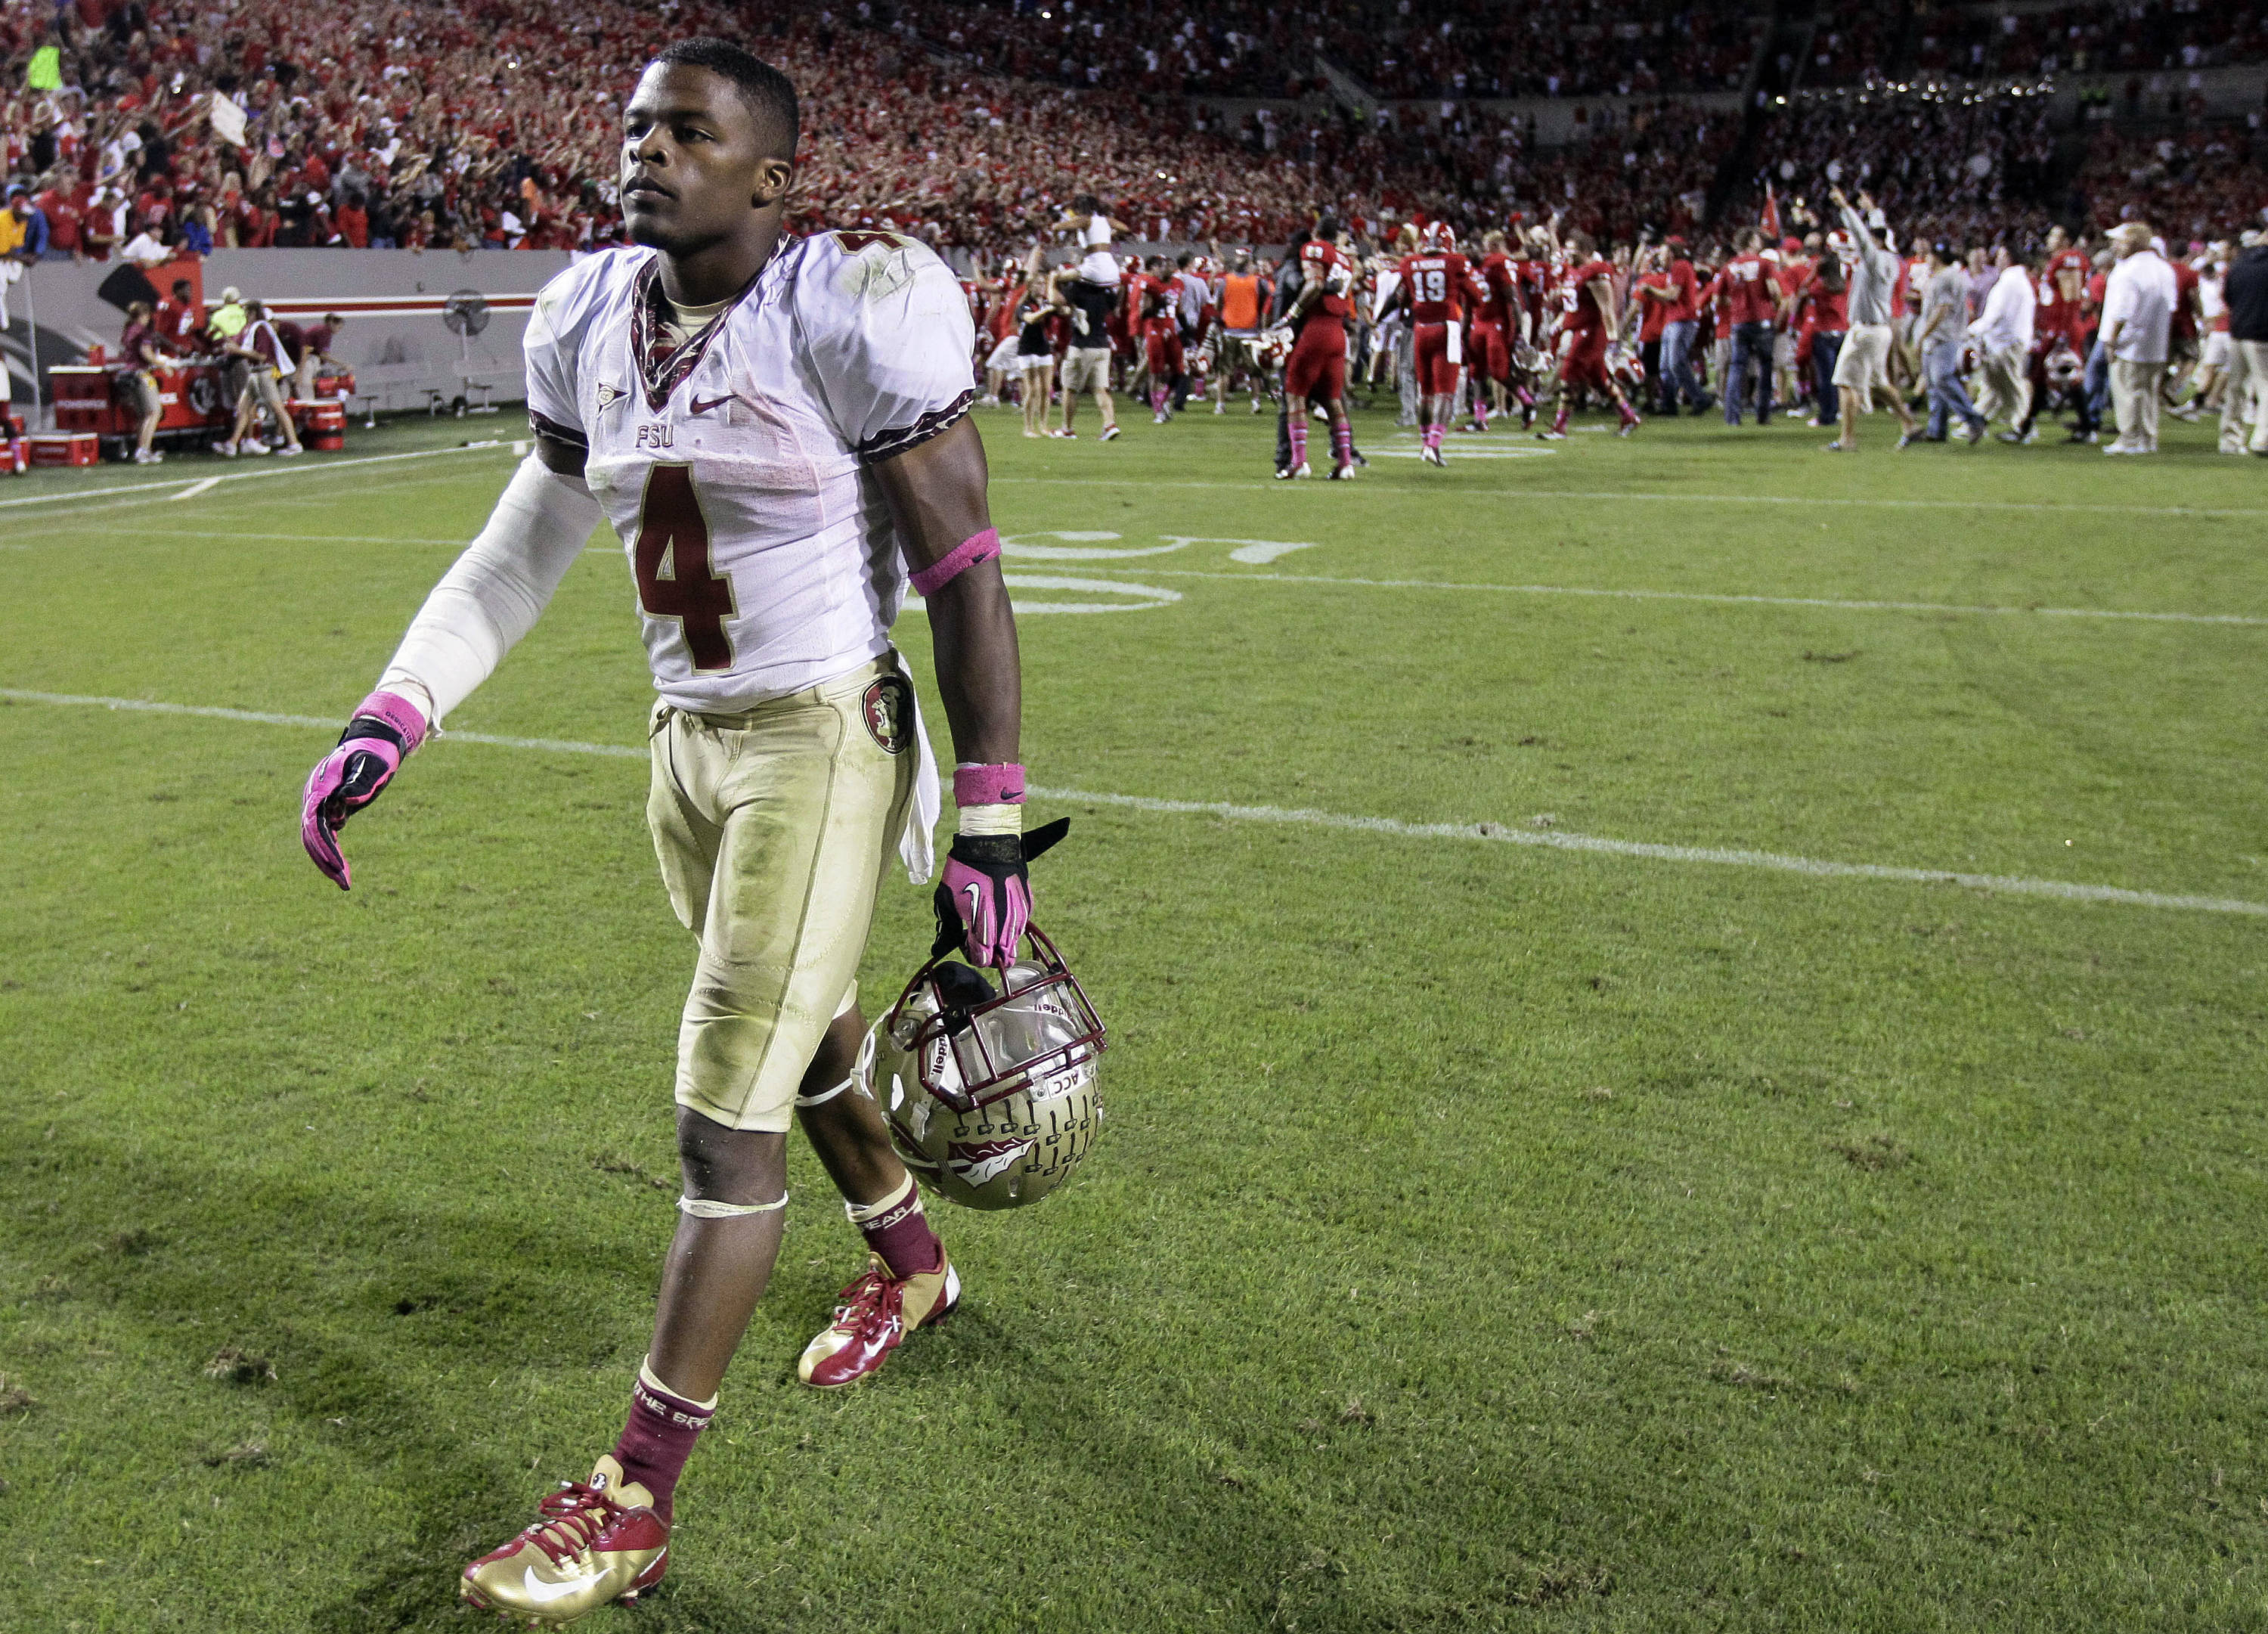 Florida State's Chris Thompson (4) walks off of the field following Florida State's 17-16 loss. (AP Photo/Gerry Broome)